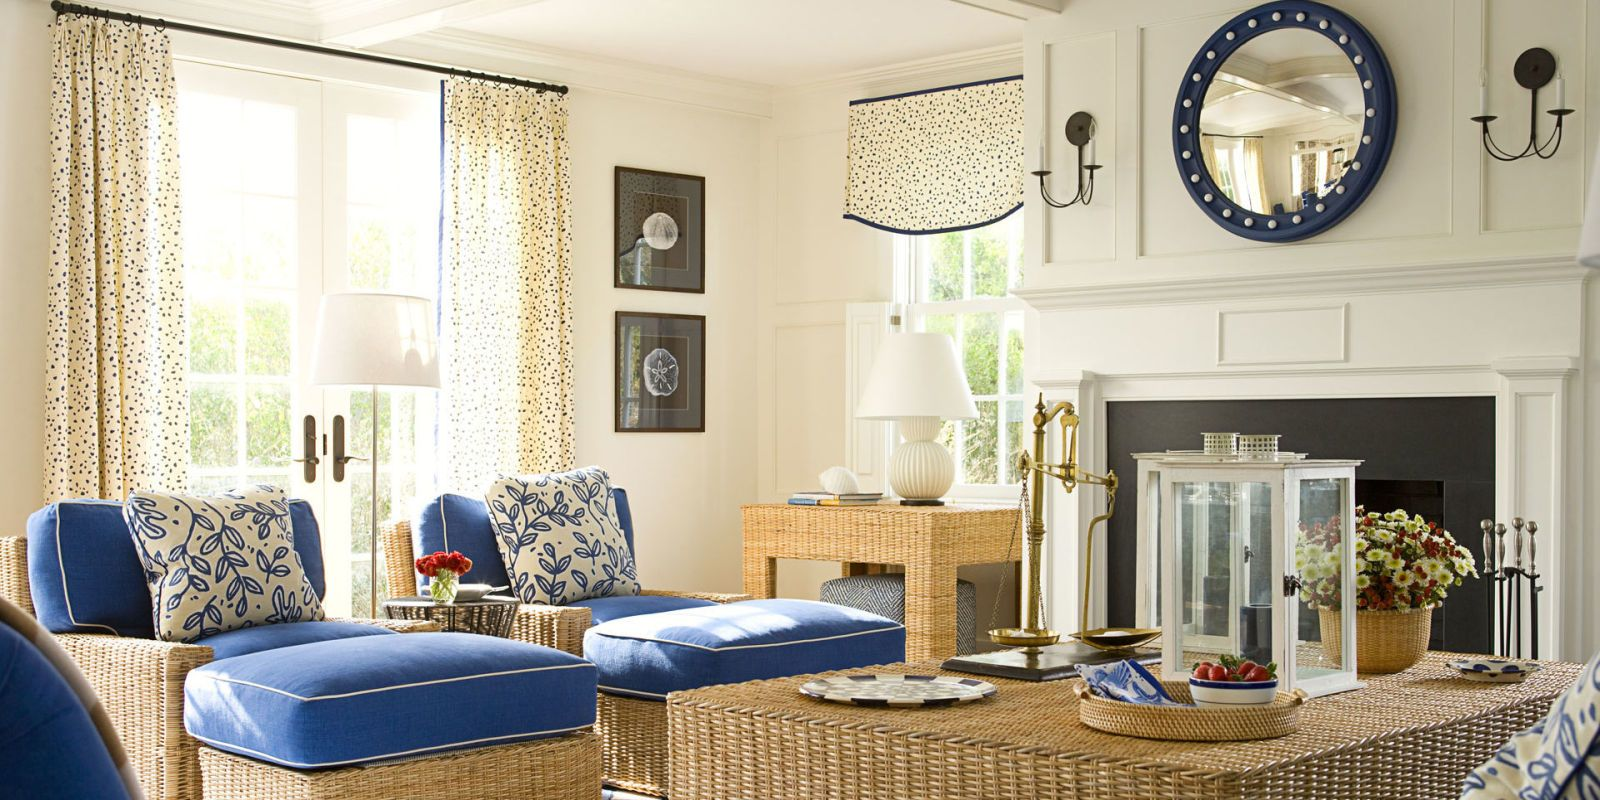 25 Simple Summer Decorating Ideas | Room ideas, Living room ideas ...